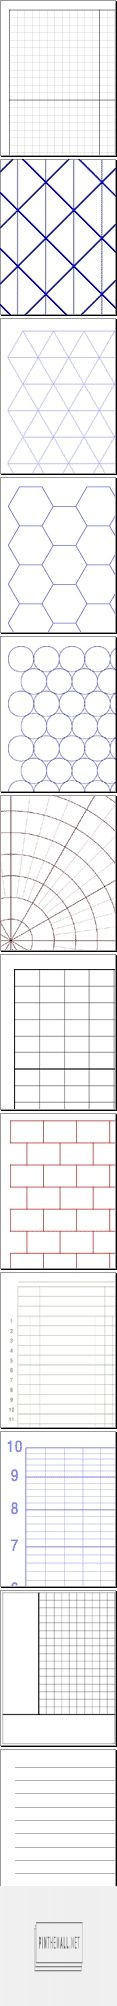 Best 25+ Grid paper printable ideas on Pinterest Bullet journal - half inch graph paper template